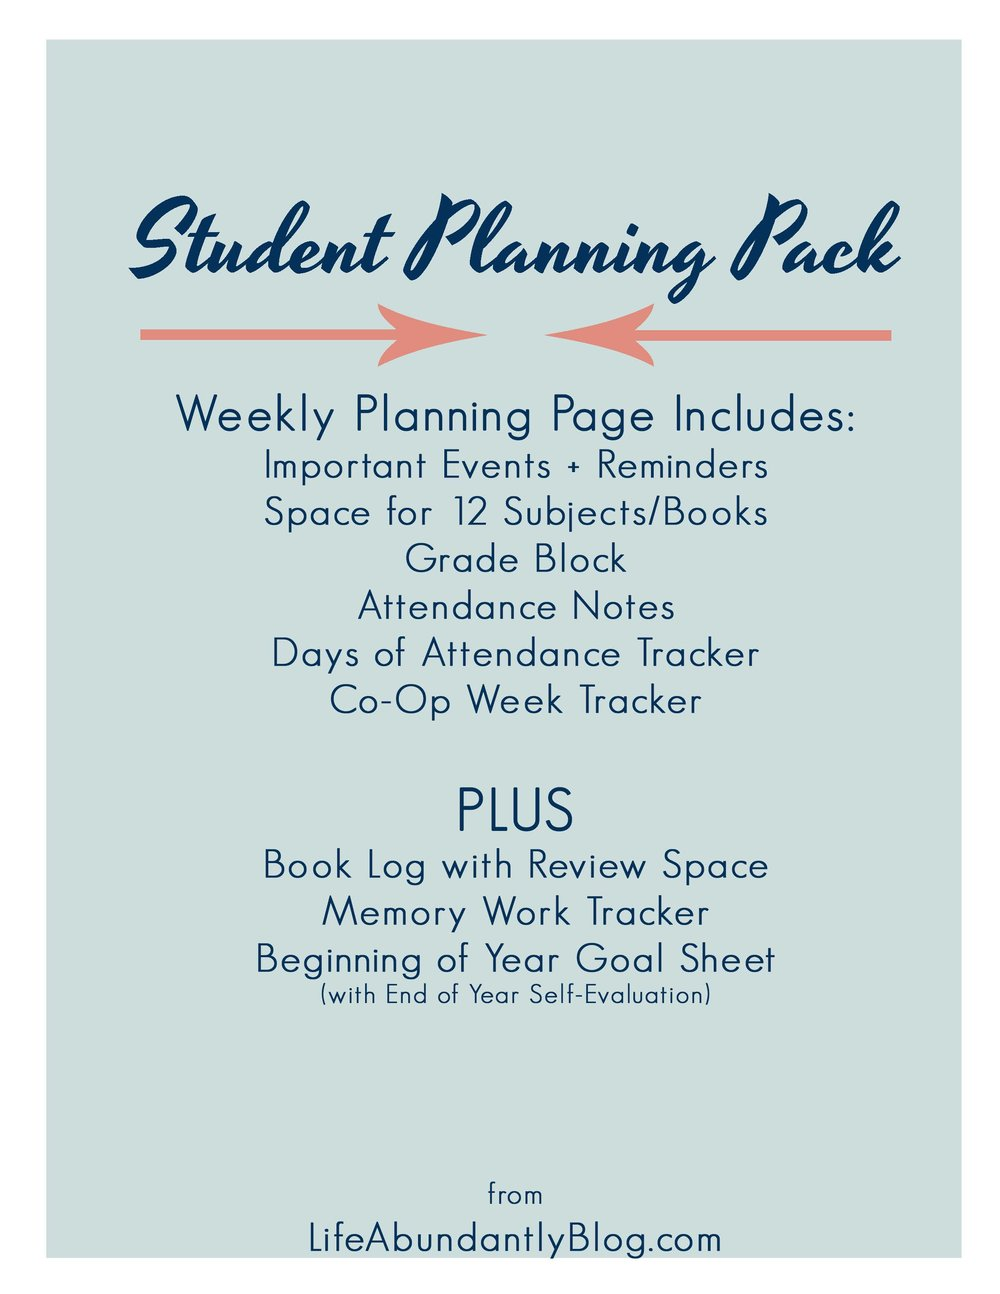 Student Planning Pack_Images_Page_1.jpg